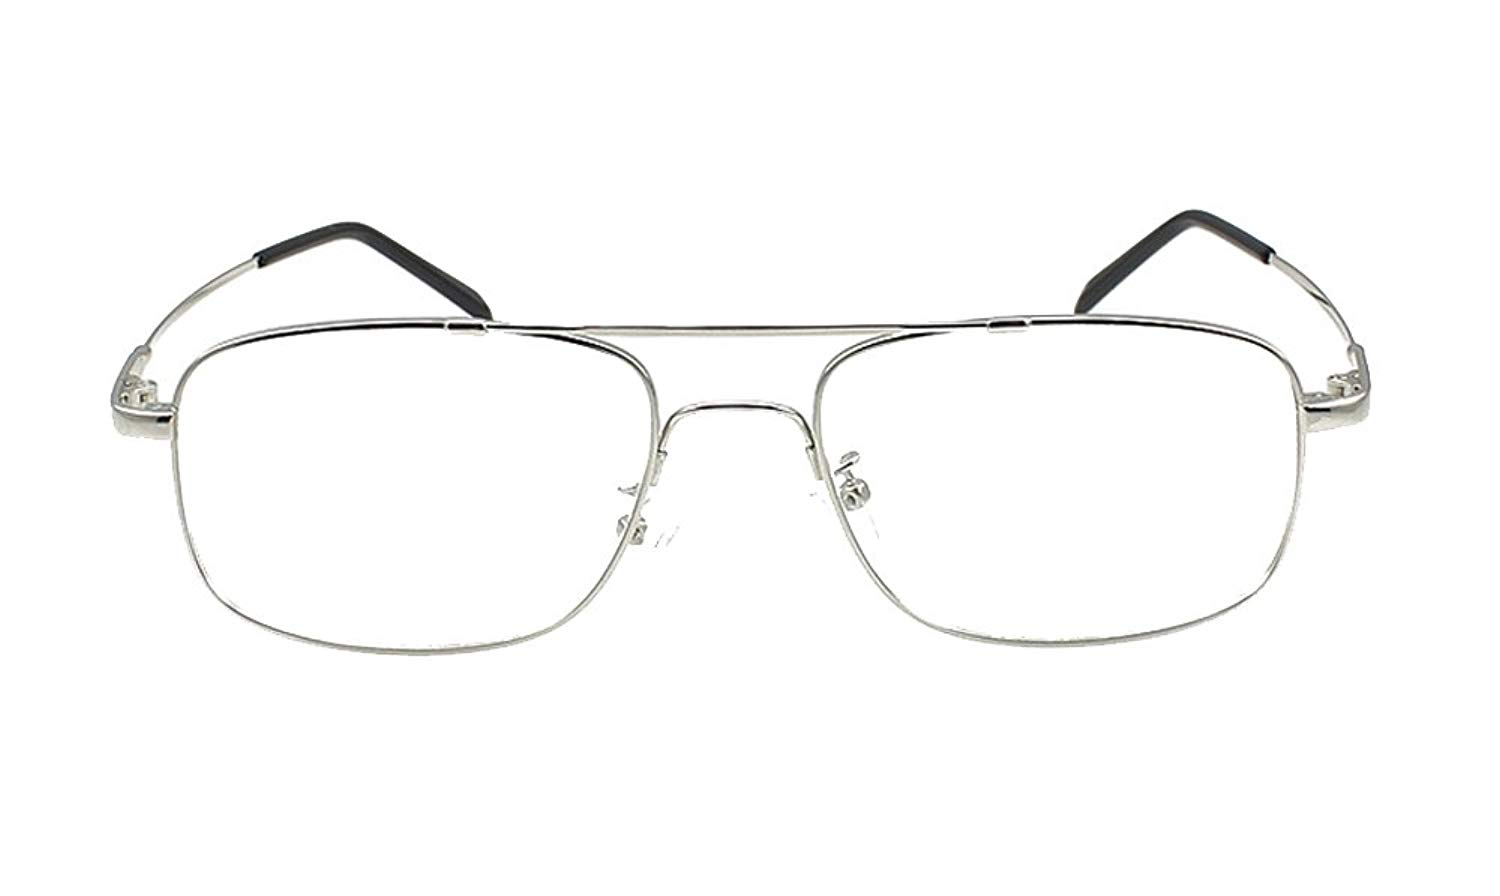 ef1d02b0b5 Get Quotations · Agstum Aviator Full-flex Memory Titanium Optical  Eyeglasses Frame